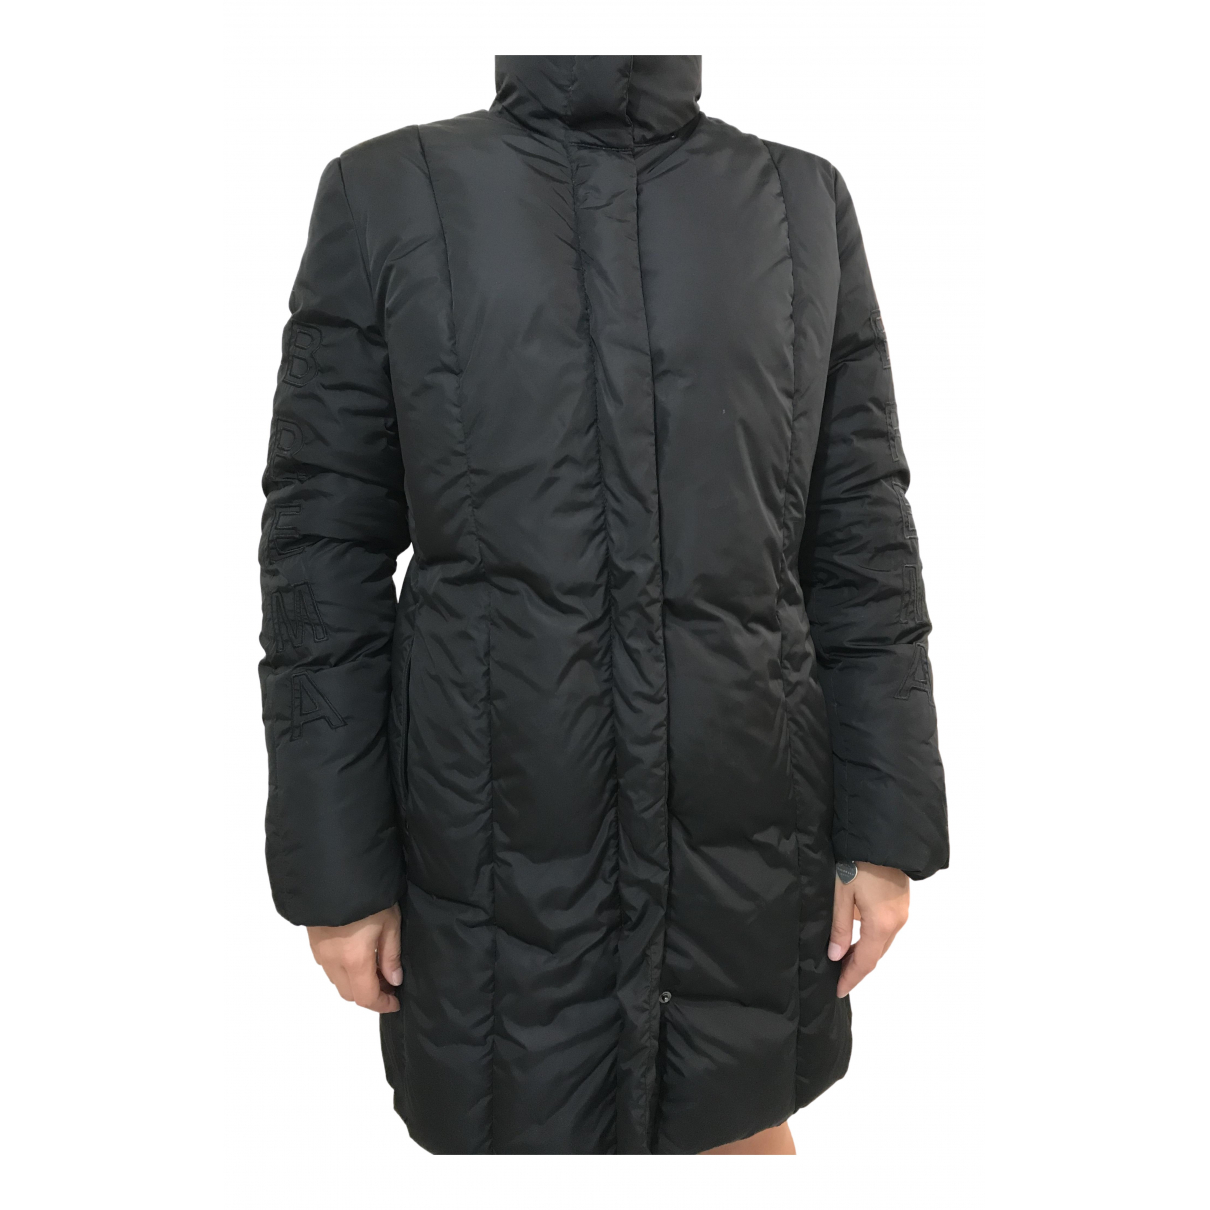 Belstaff \N Black jacket for Women 44 IT